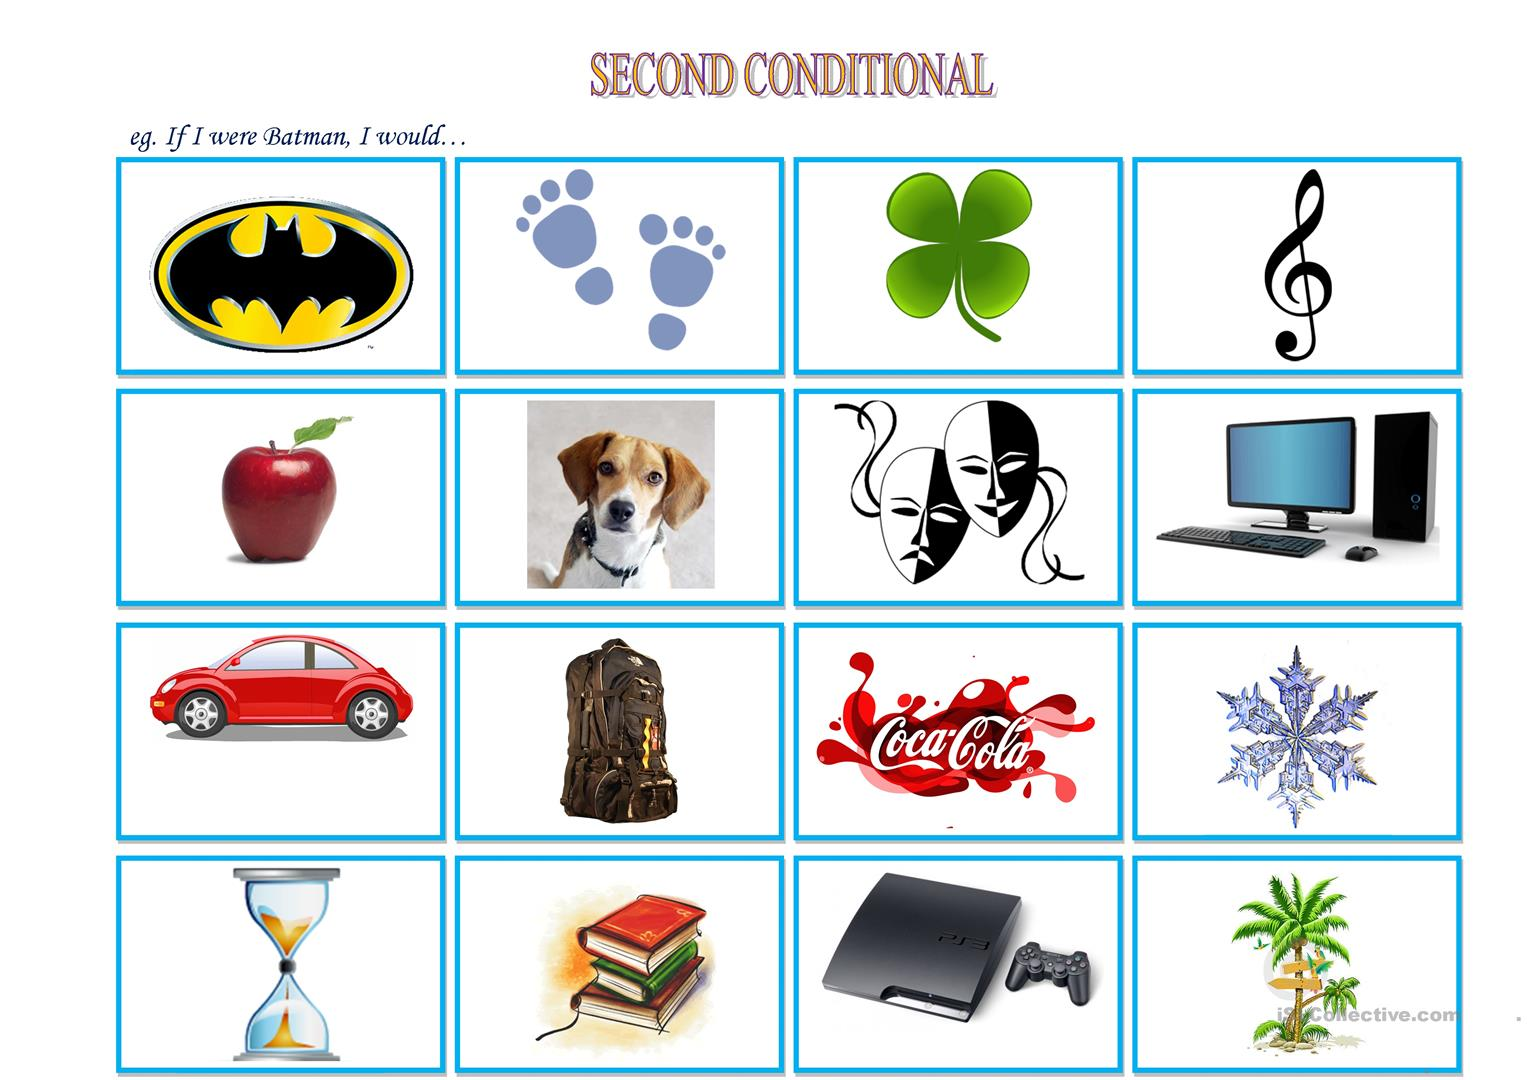 Second Conditional Cards